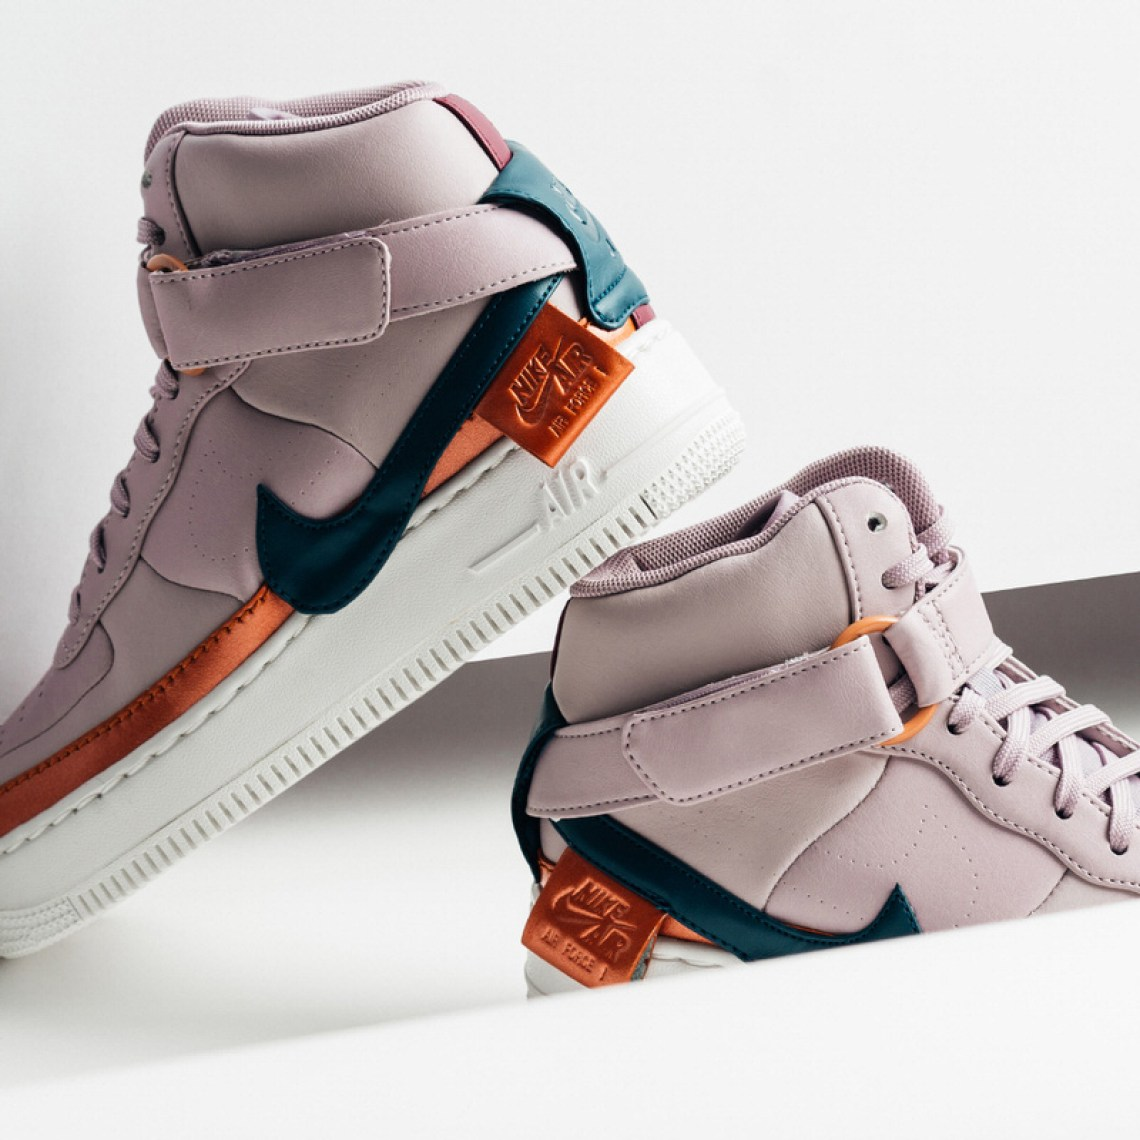 876d5e4a9c92 Nike Air Force 1 Jester High XX Collection Launches for the Ladies ...